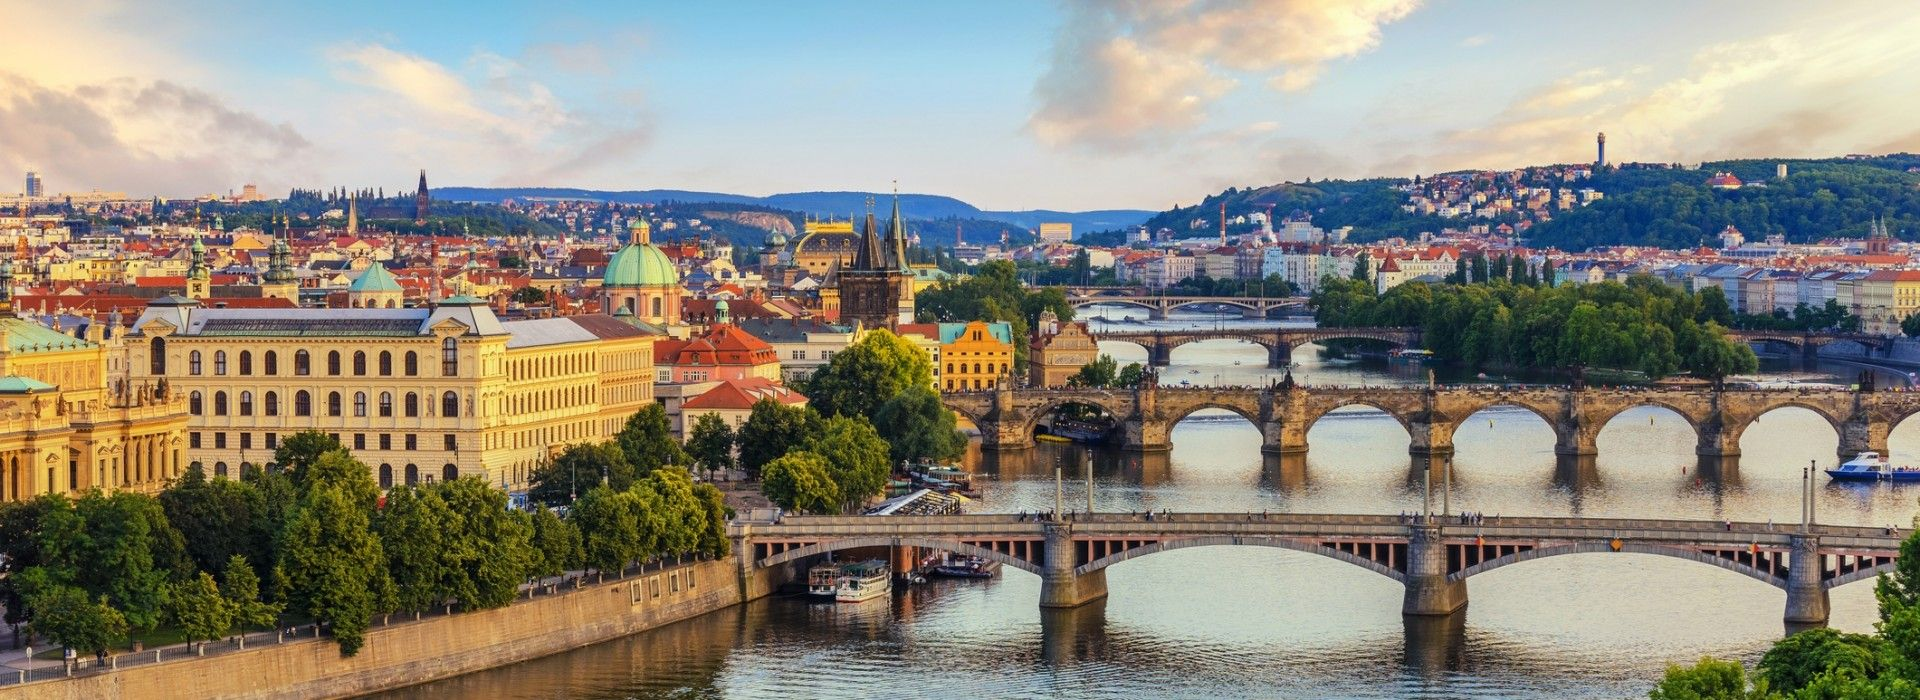 Travelling Czech Republic - Tours and Holiday Packages in Czech Republic